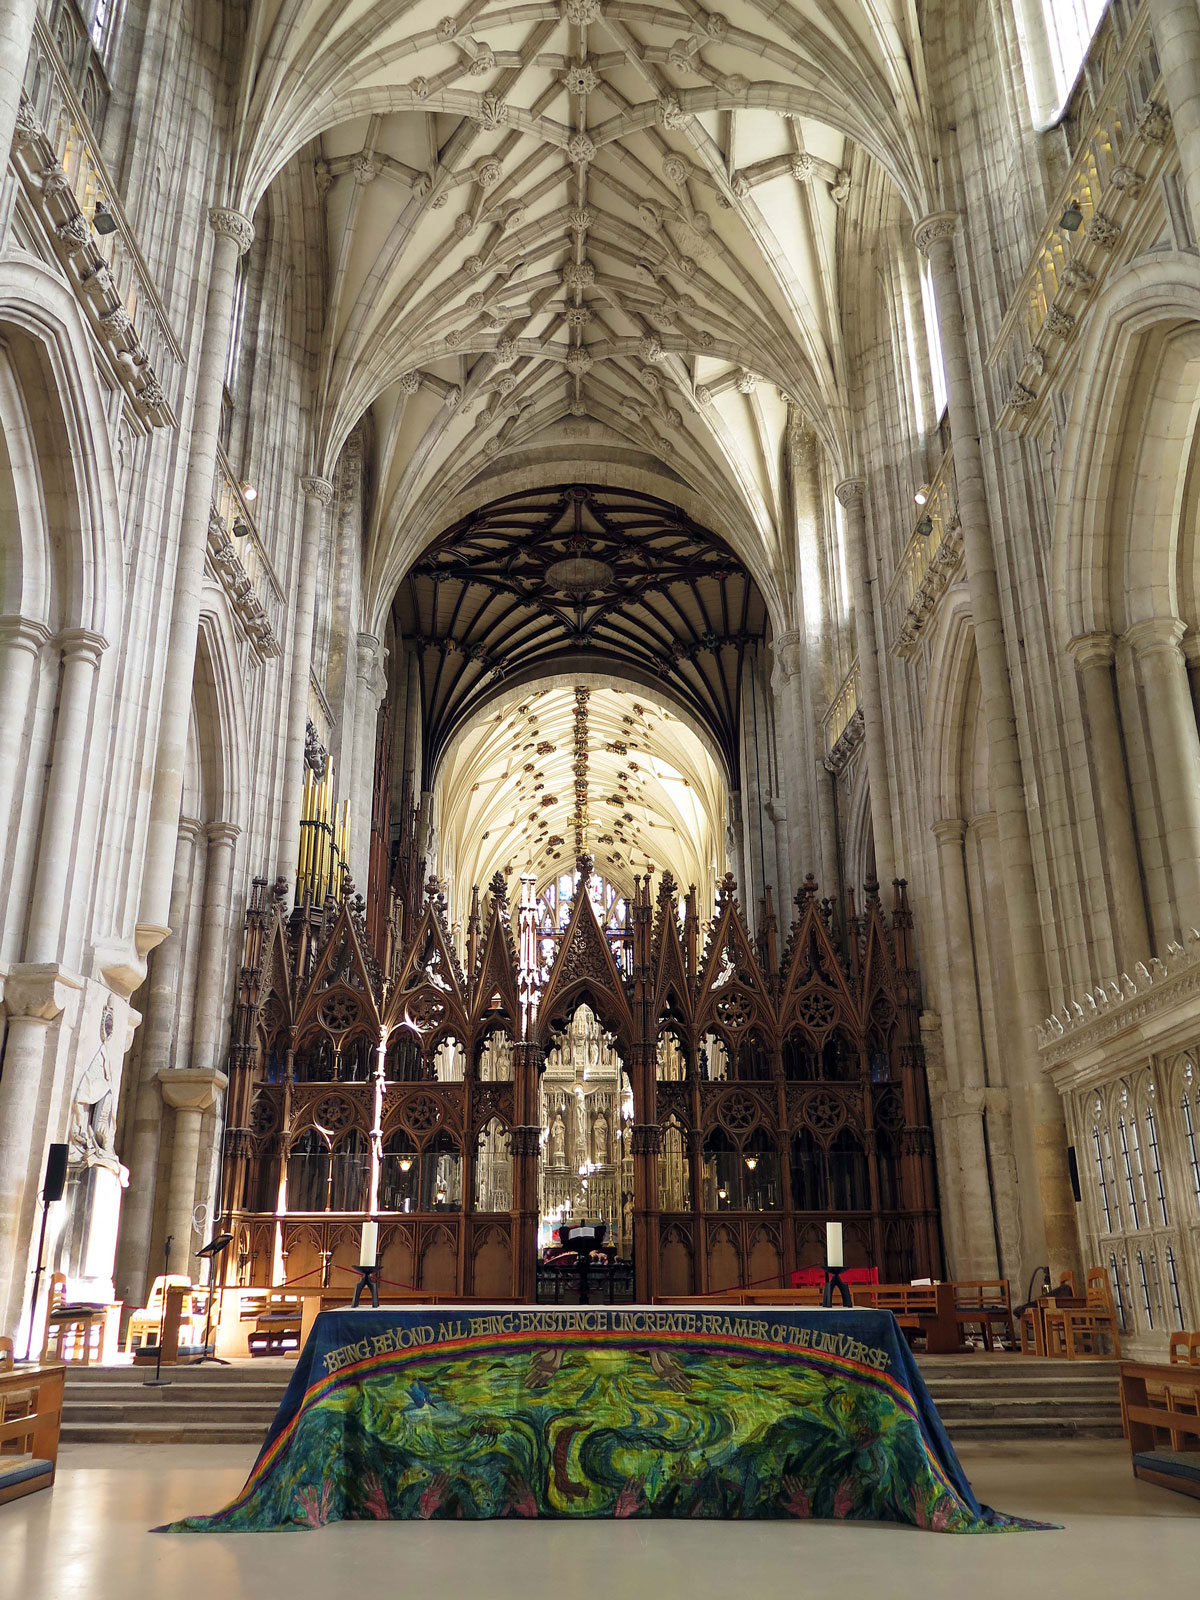 The Nave Altar and Choir Screen